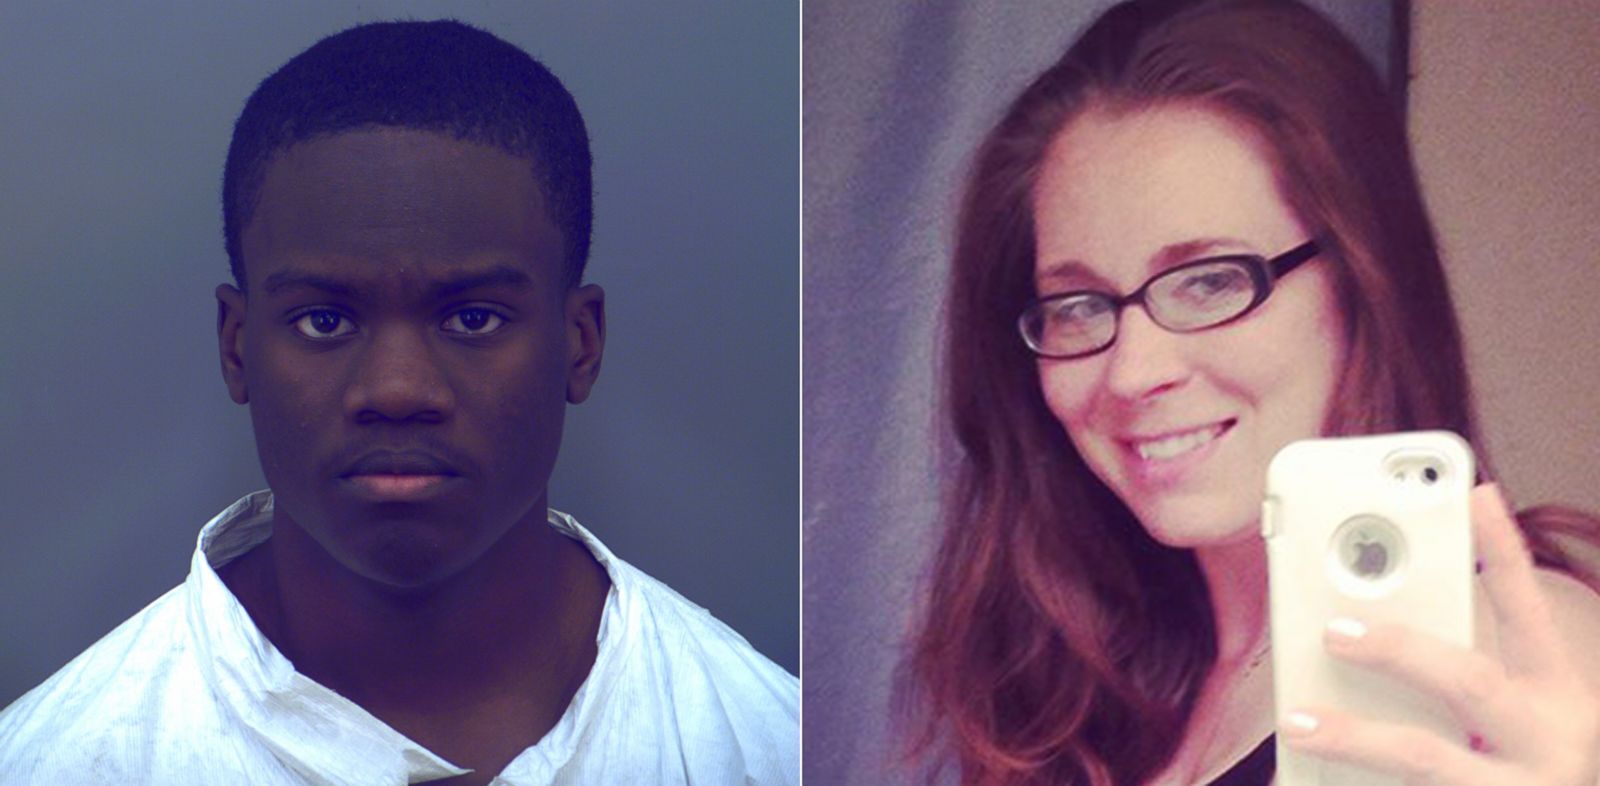 PHOTO: El Paso Police have arrested 19-year-old Corey Bernard Moss, left, on a charge of criminal attempted murder after he allegedly attacked a 31-year-old pregnant woman, Rachel Poole, right, inside her home.